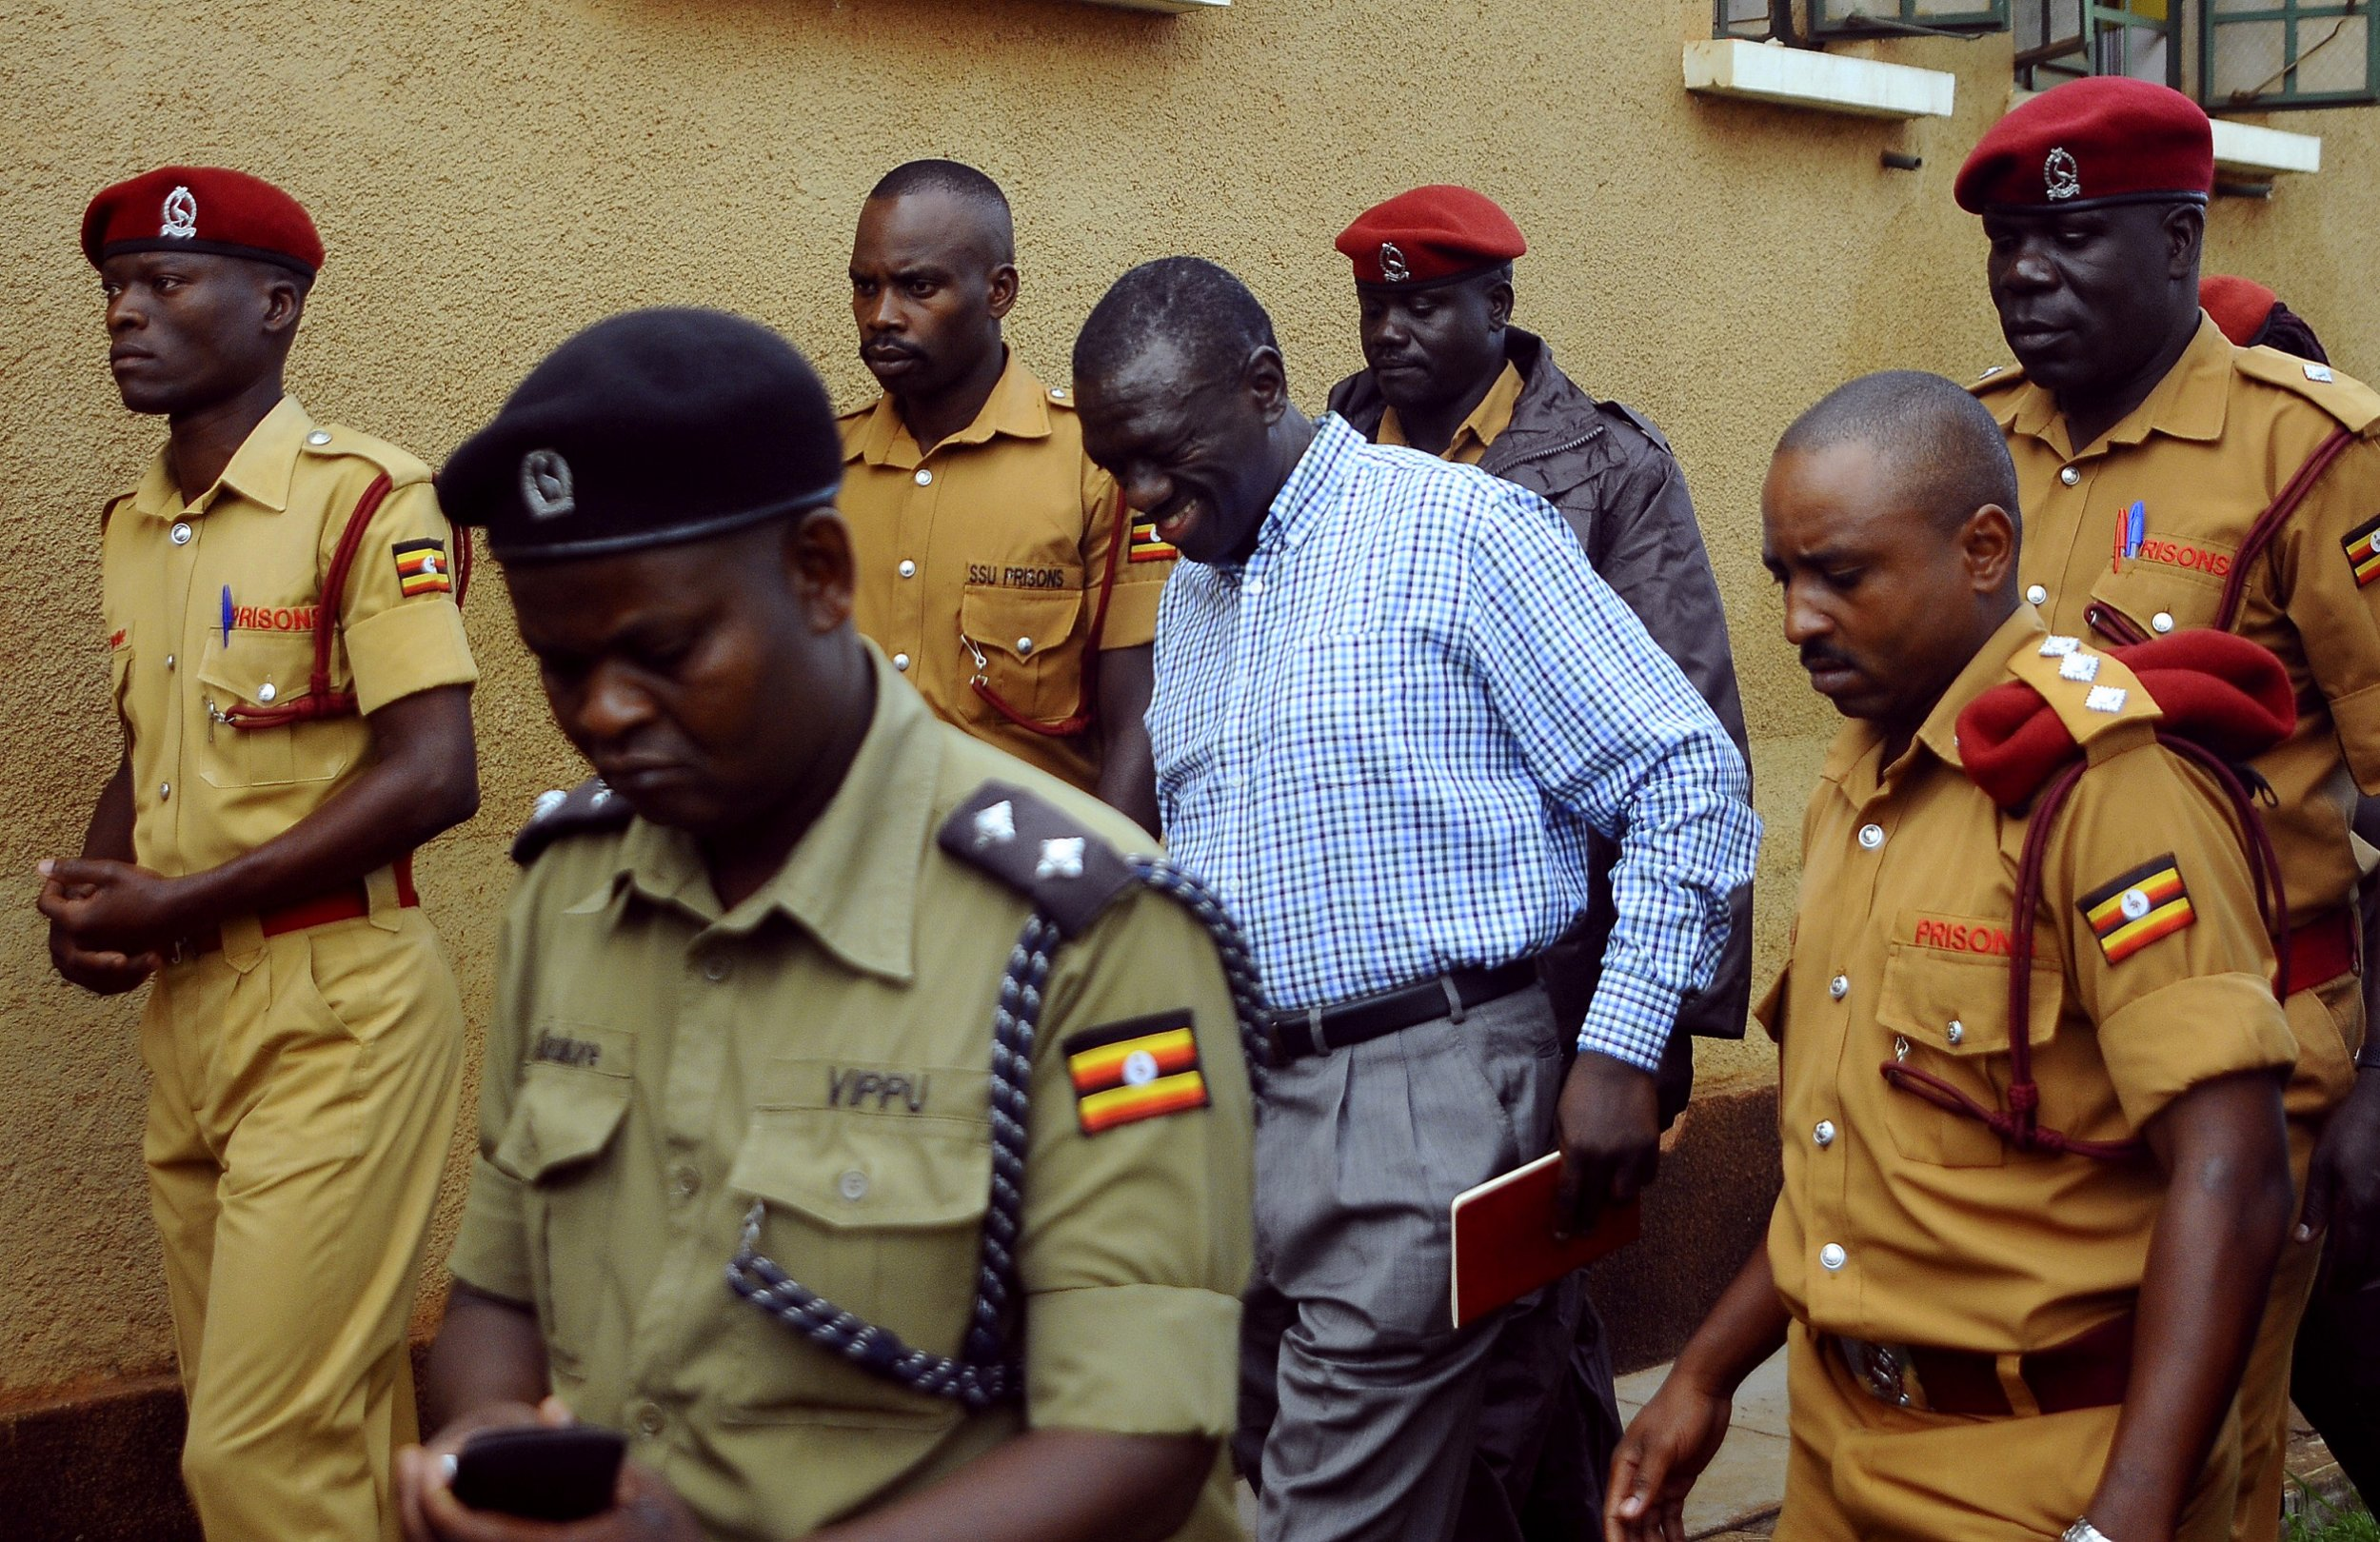 Kizza Besigye goes to court